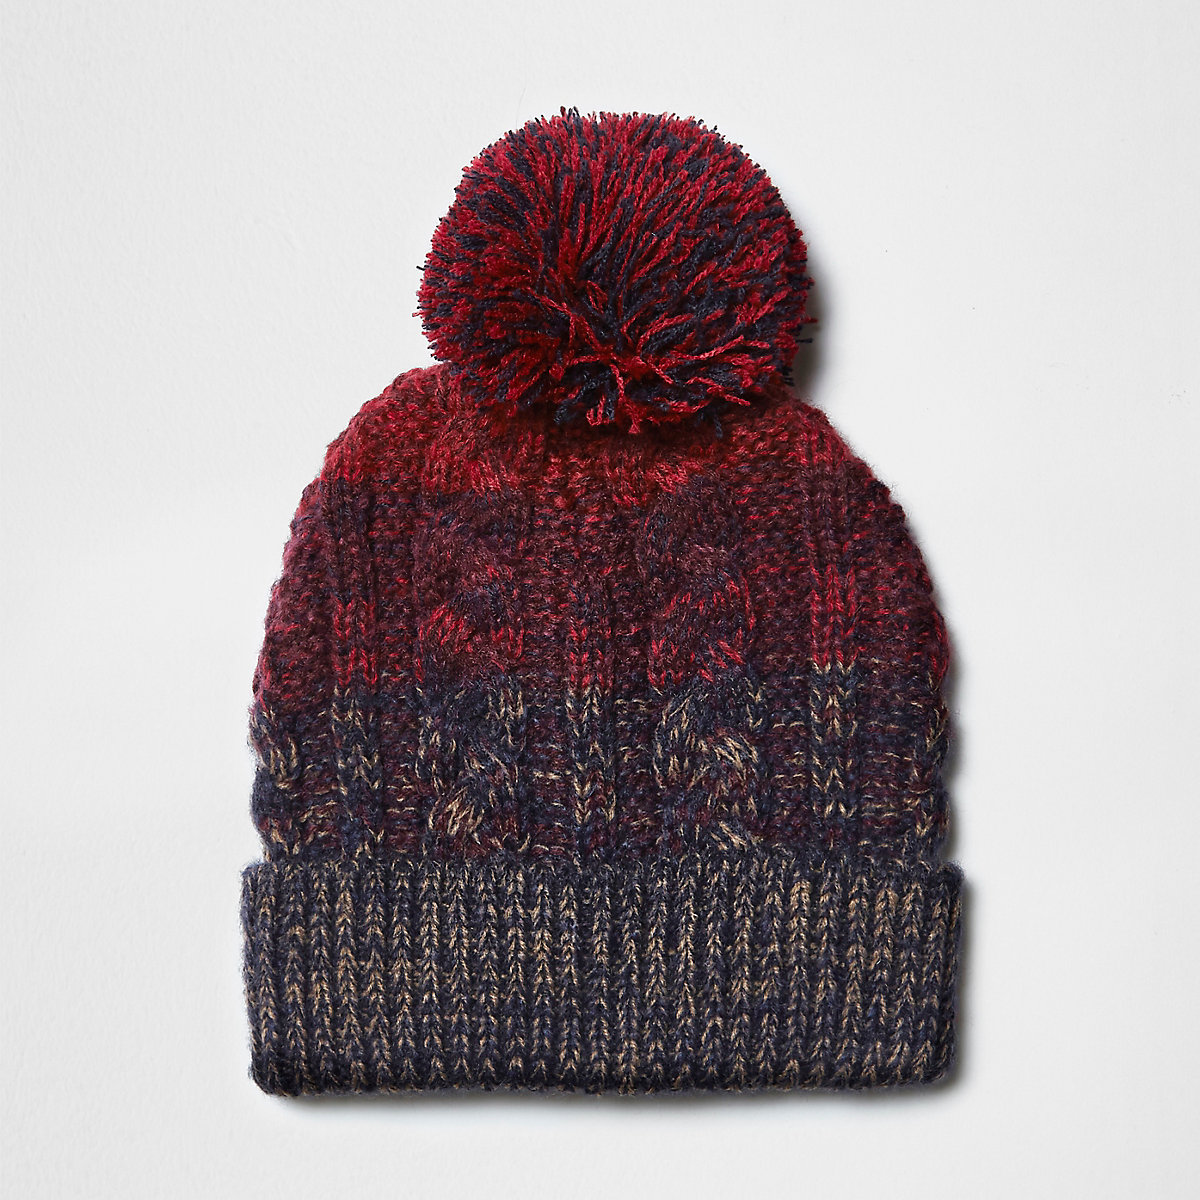 Red and navy cable knit bobble beanie hat - Hats   Caps - Accessories - men 0c6a86abde8